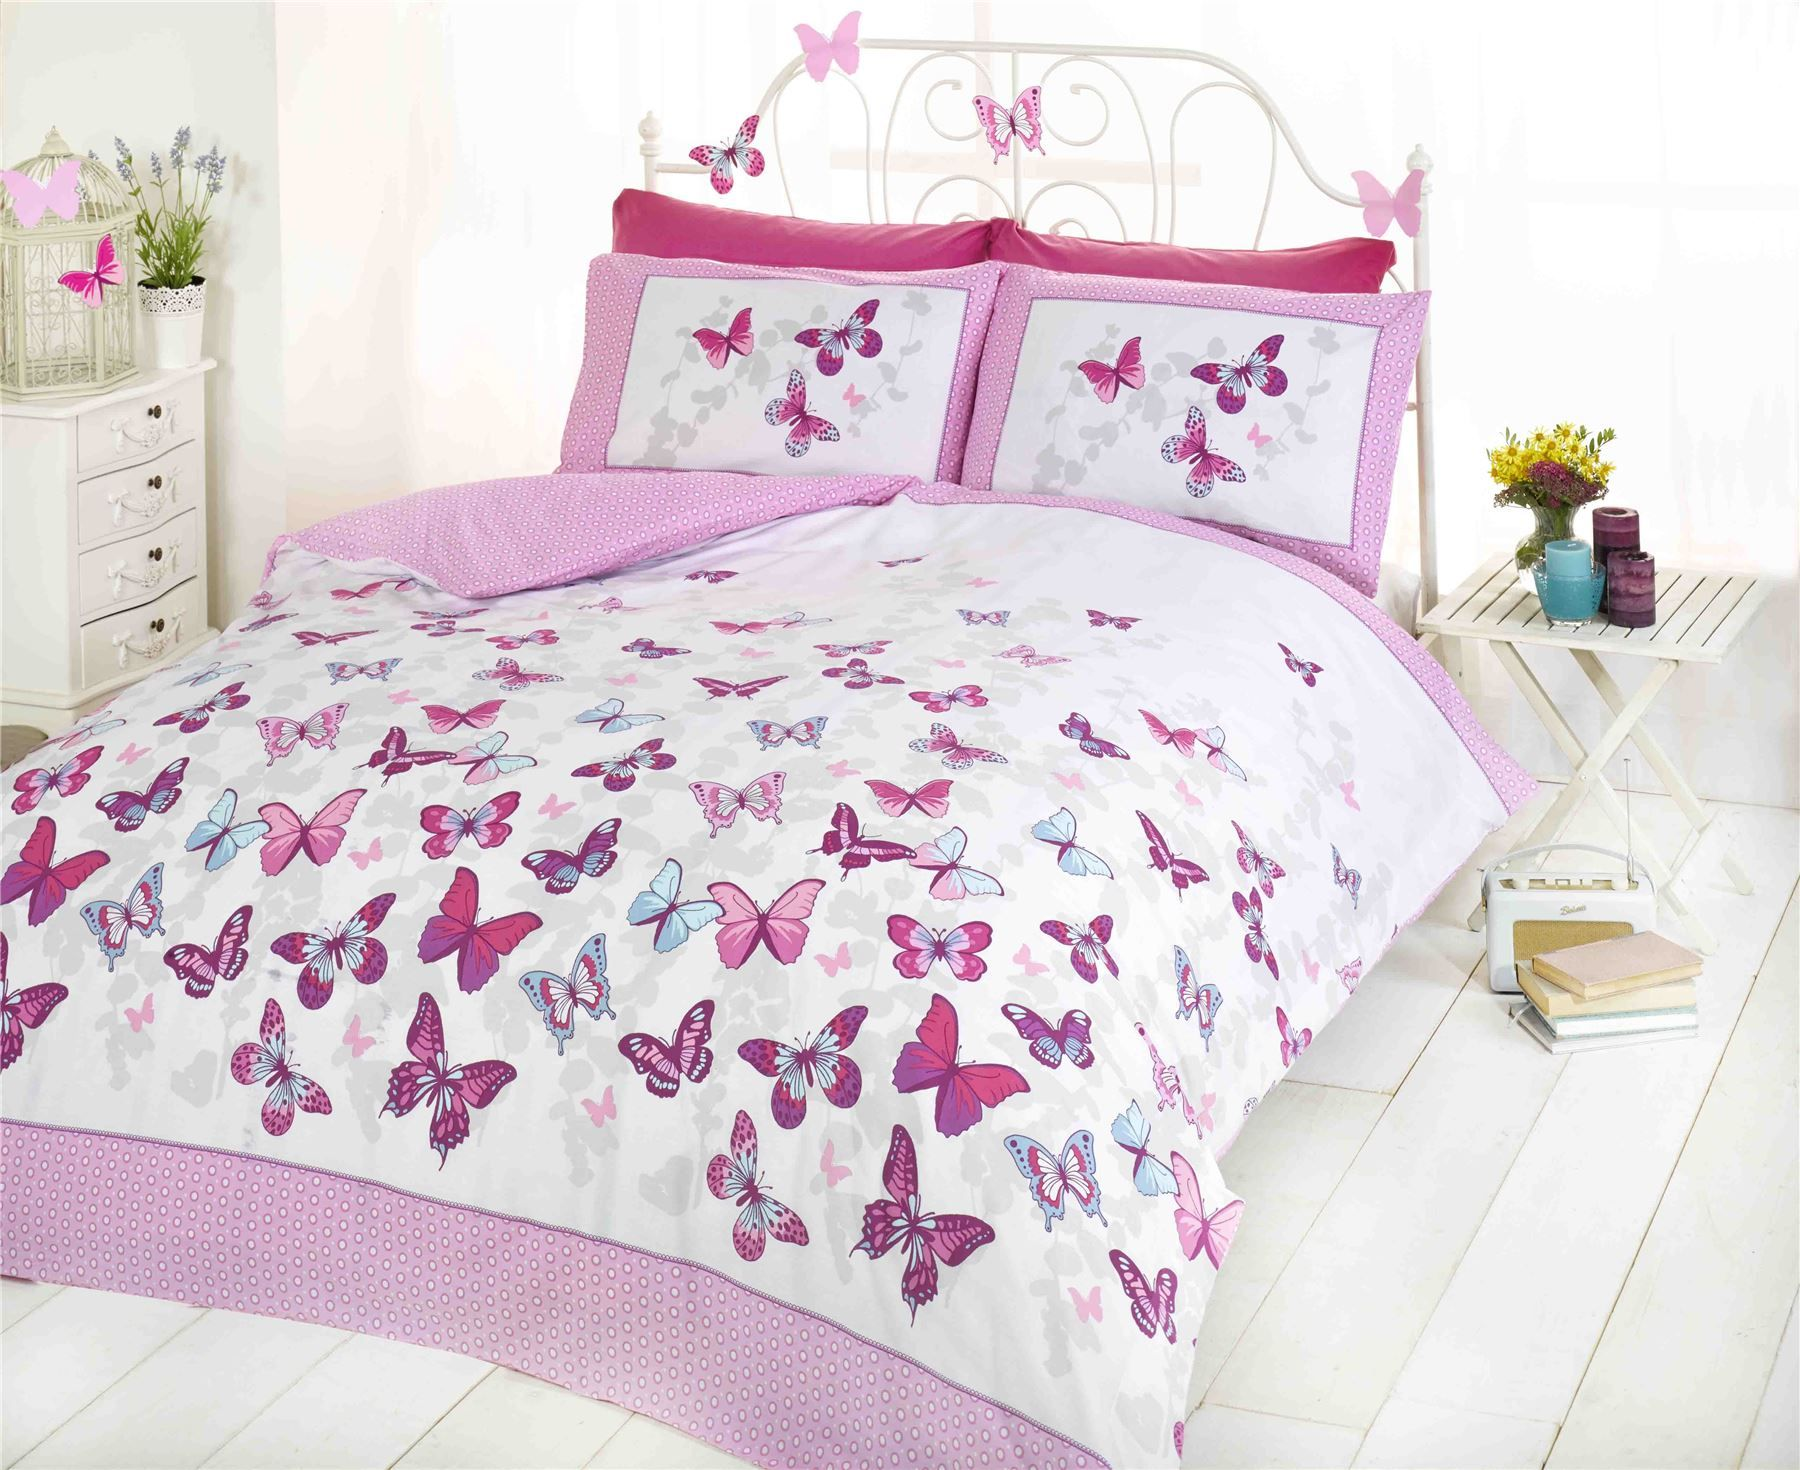 autumn ready comforter butterfly pin bedding wilko bedroom for your transform with